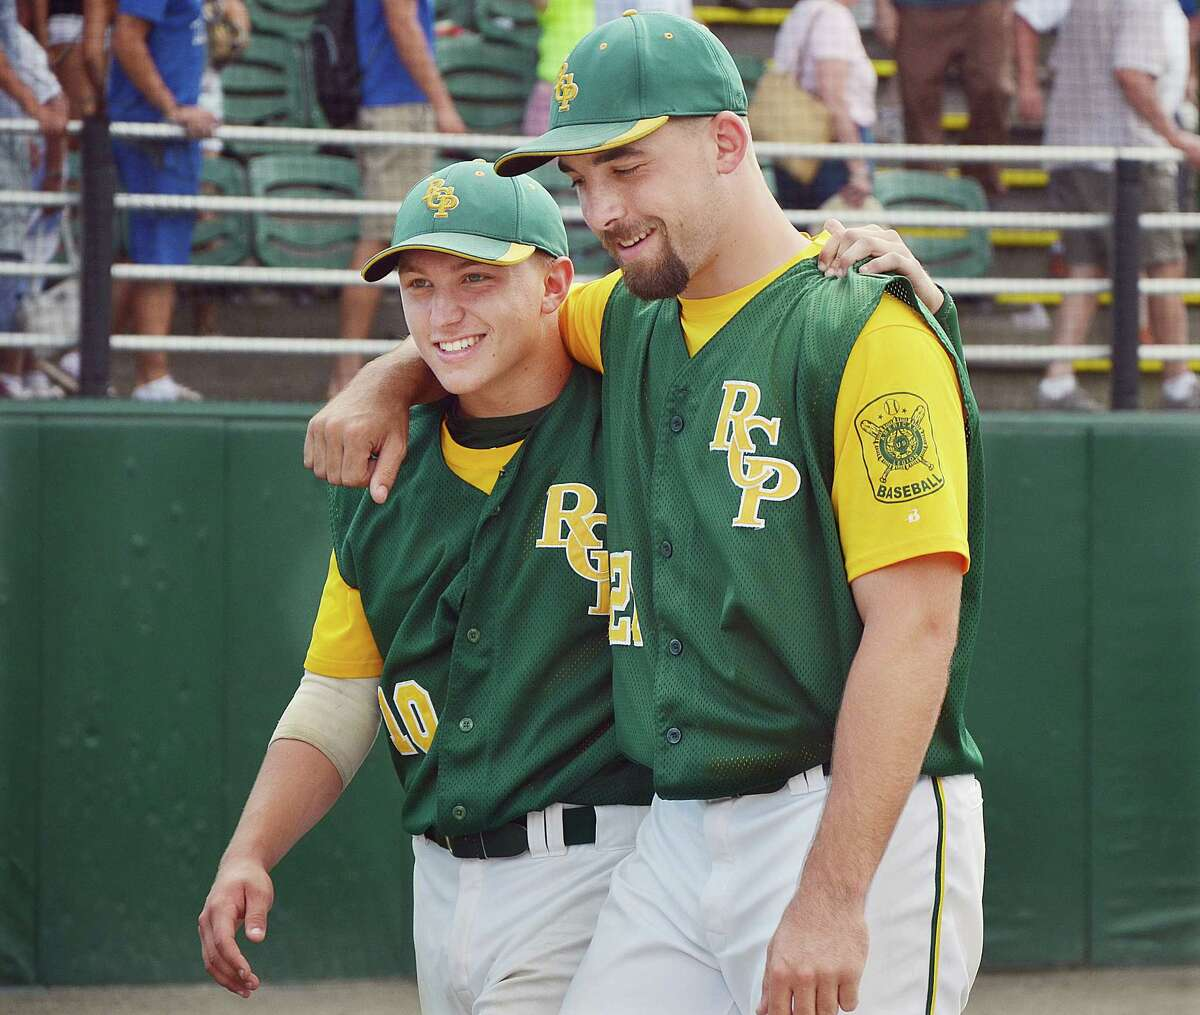 RCP's Christian Budzik, at left and Tommy Seaver celebrate following their 7-2 win over Post 75 Middletown in the semi final game of the American Legion Baseball Northeast Regional Tournament at William Pomfret Stadium at Palmer Field.